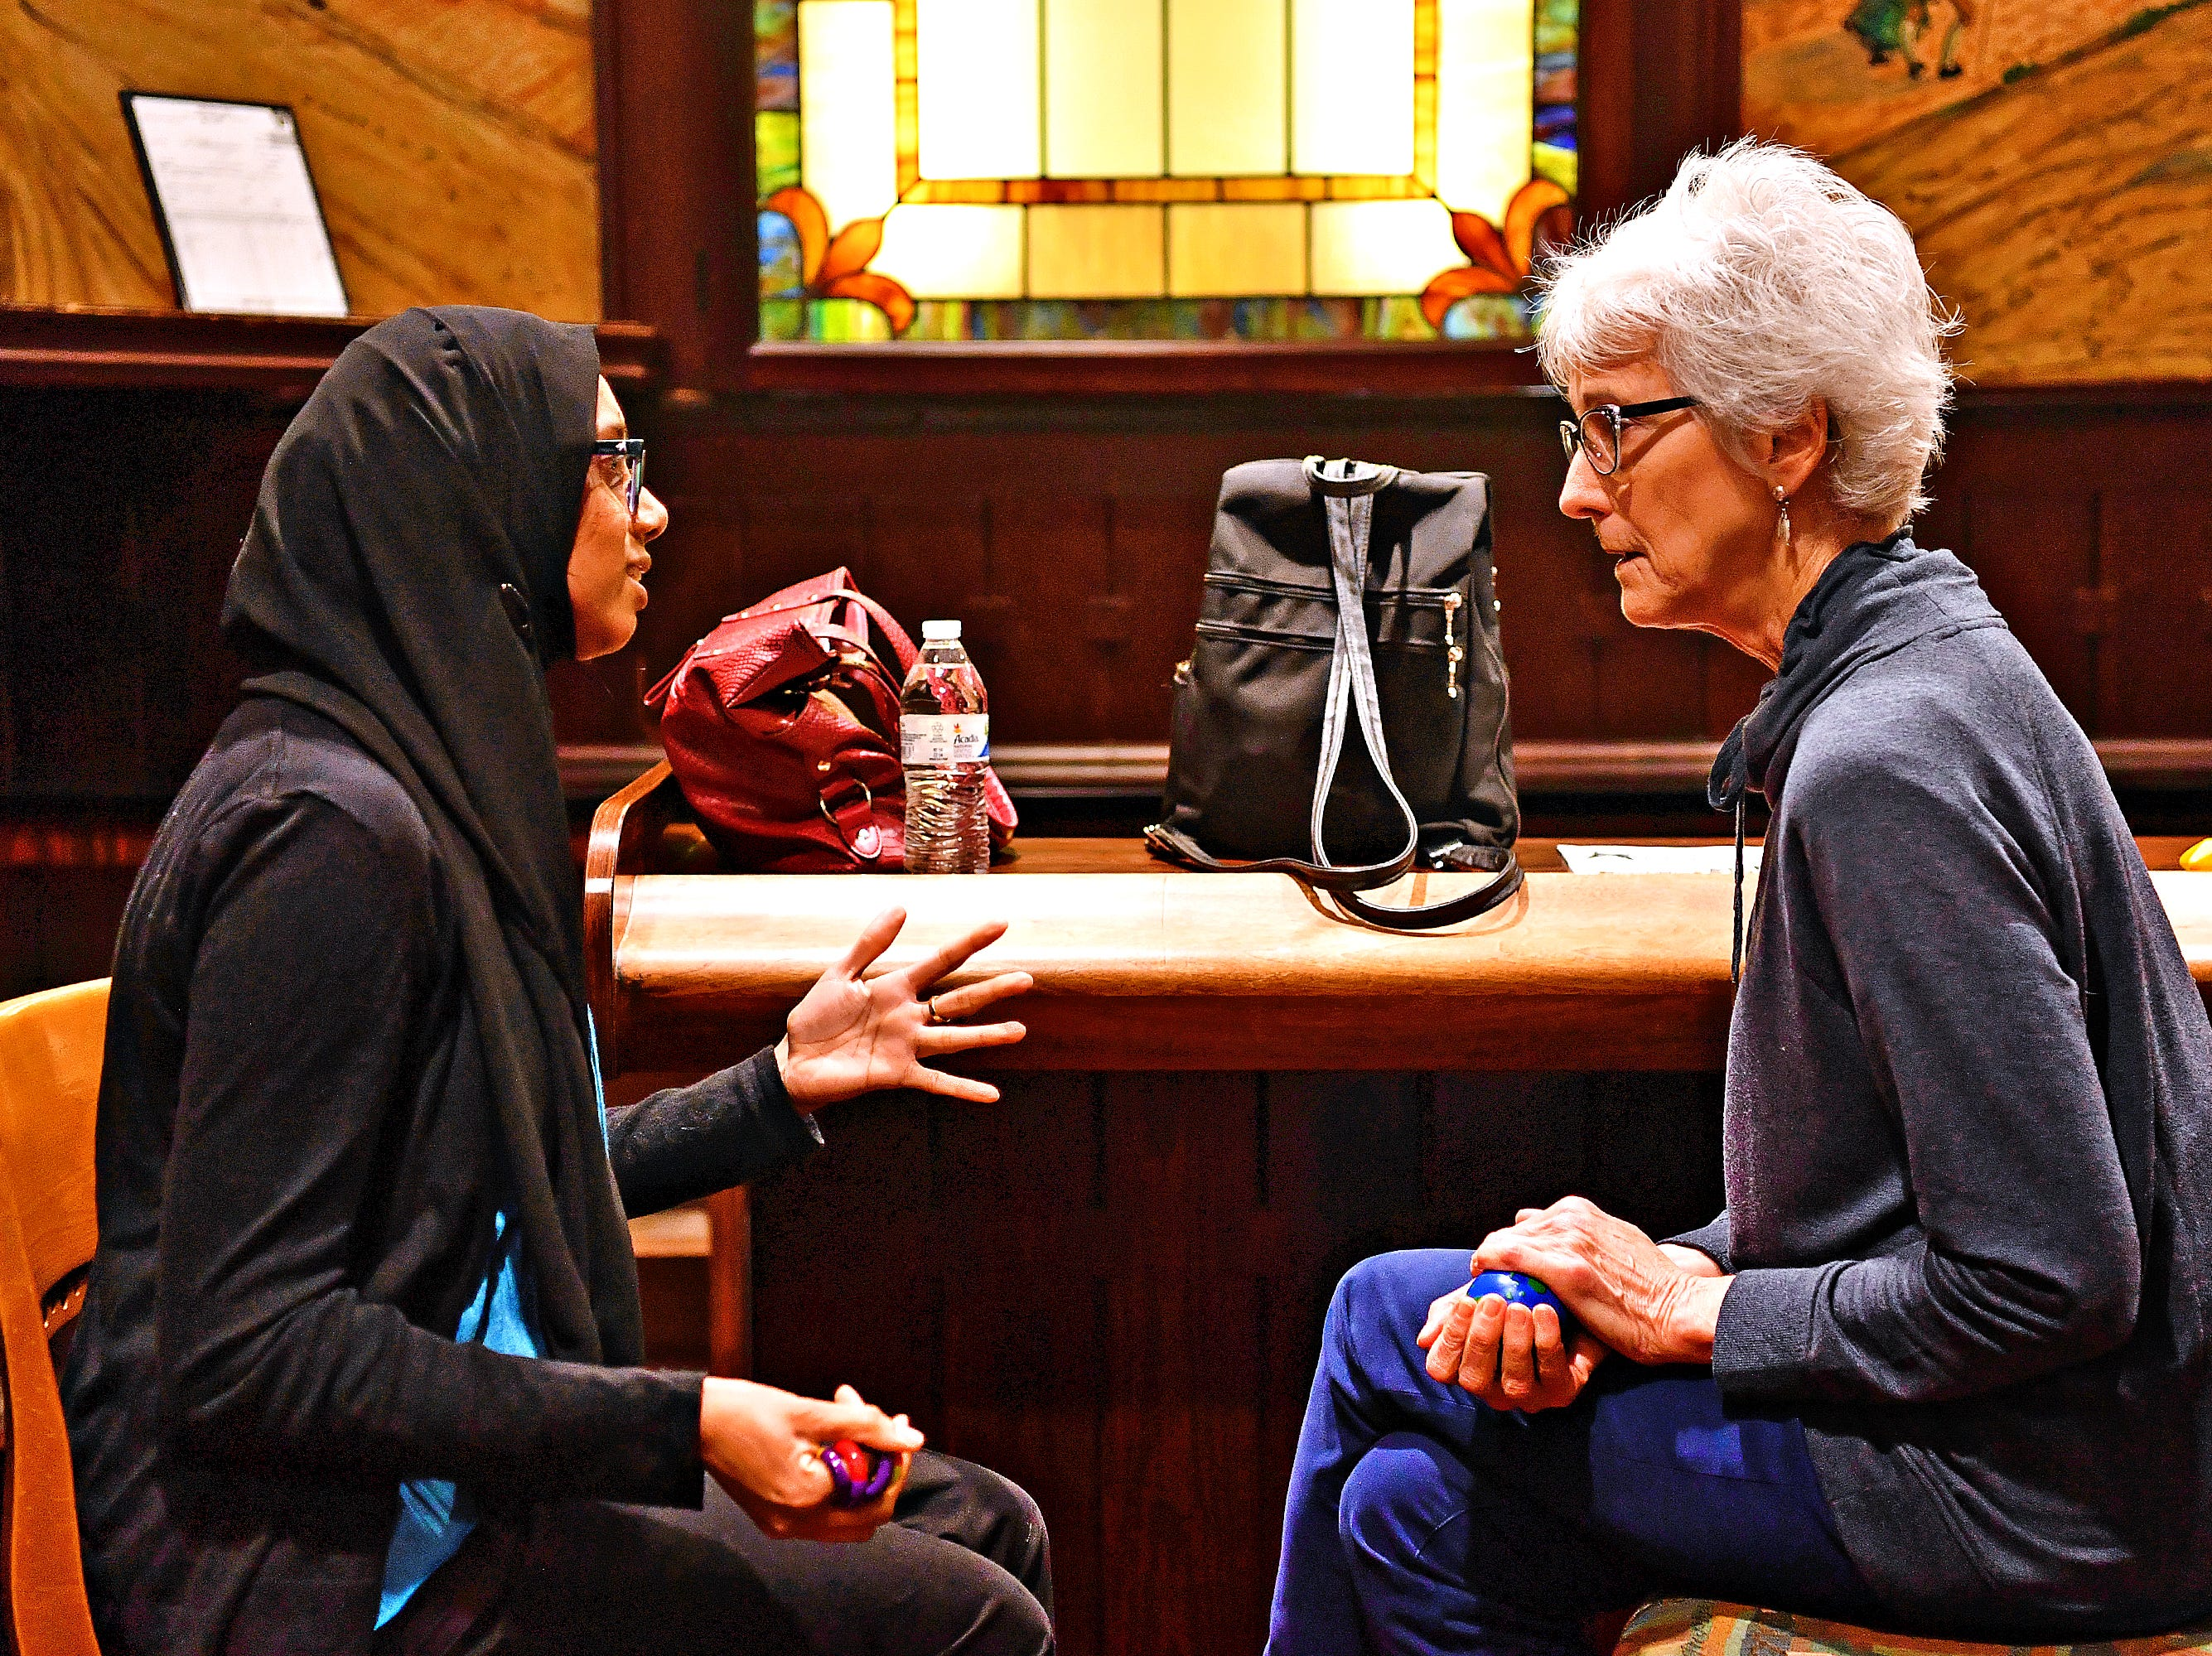 """Rabyia Ahmed, of Springettsbury Township, whose book title is, """"Muslim Woman,"""" talks with Sherry Lookofsky, of Manchester Township, as """"readers"""" interact with a library collection of human """"books"""" during the third Human Library: York event at York College Center for Community Engagement in York City, Saturday, March 30, 2019. Dawn J. Sagert photo"""